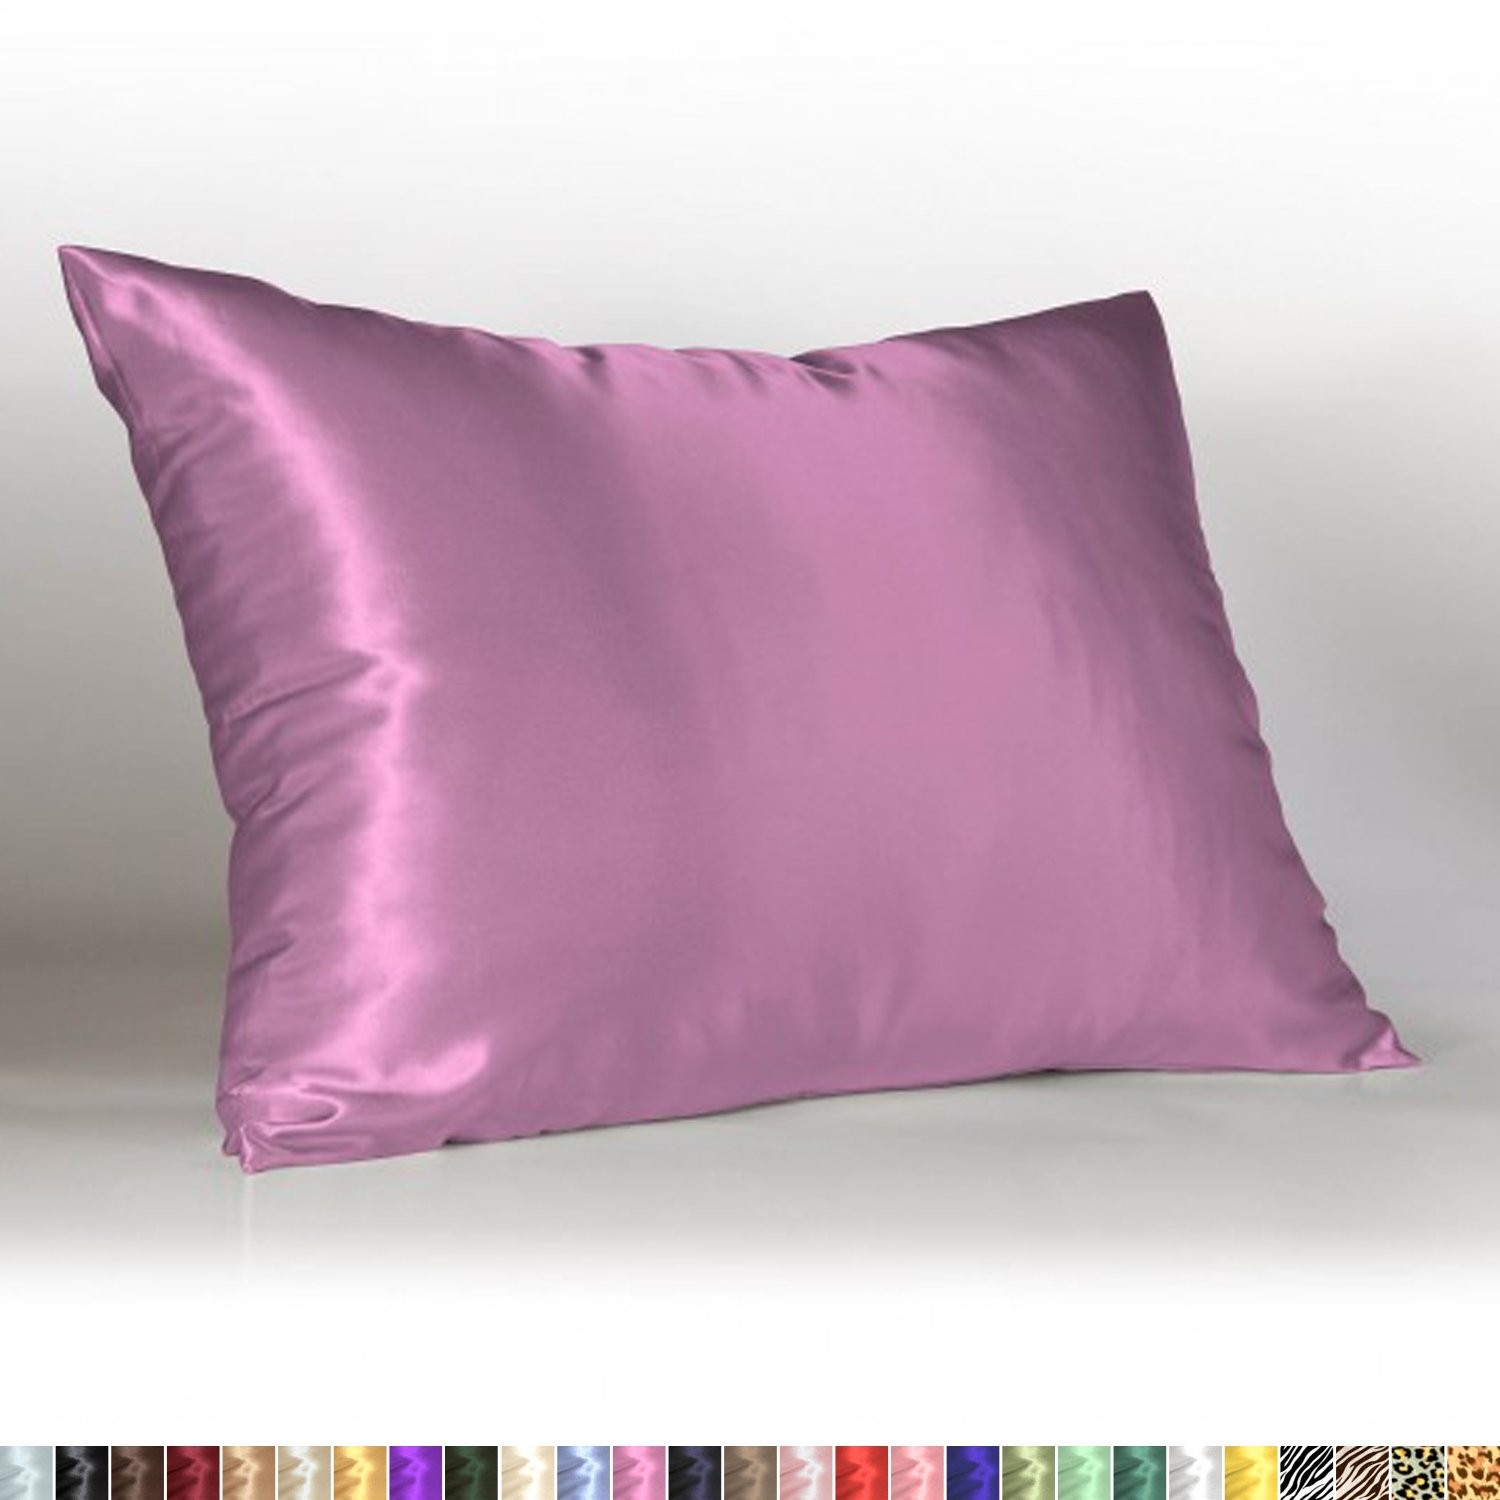 Sweet Dreams - Blissford Luxury Satin Pillowcase with Zipper, Standard Size, Lavender (Silky Satin Pillow Case for Hair) By Shop Bedding (1-Pack)